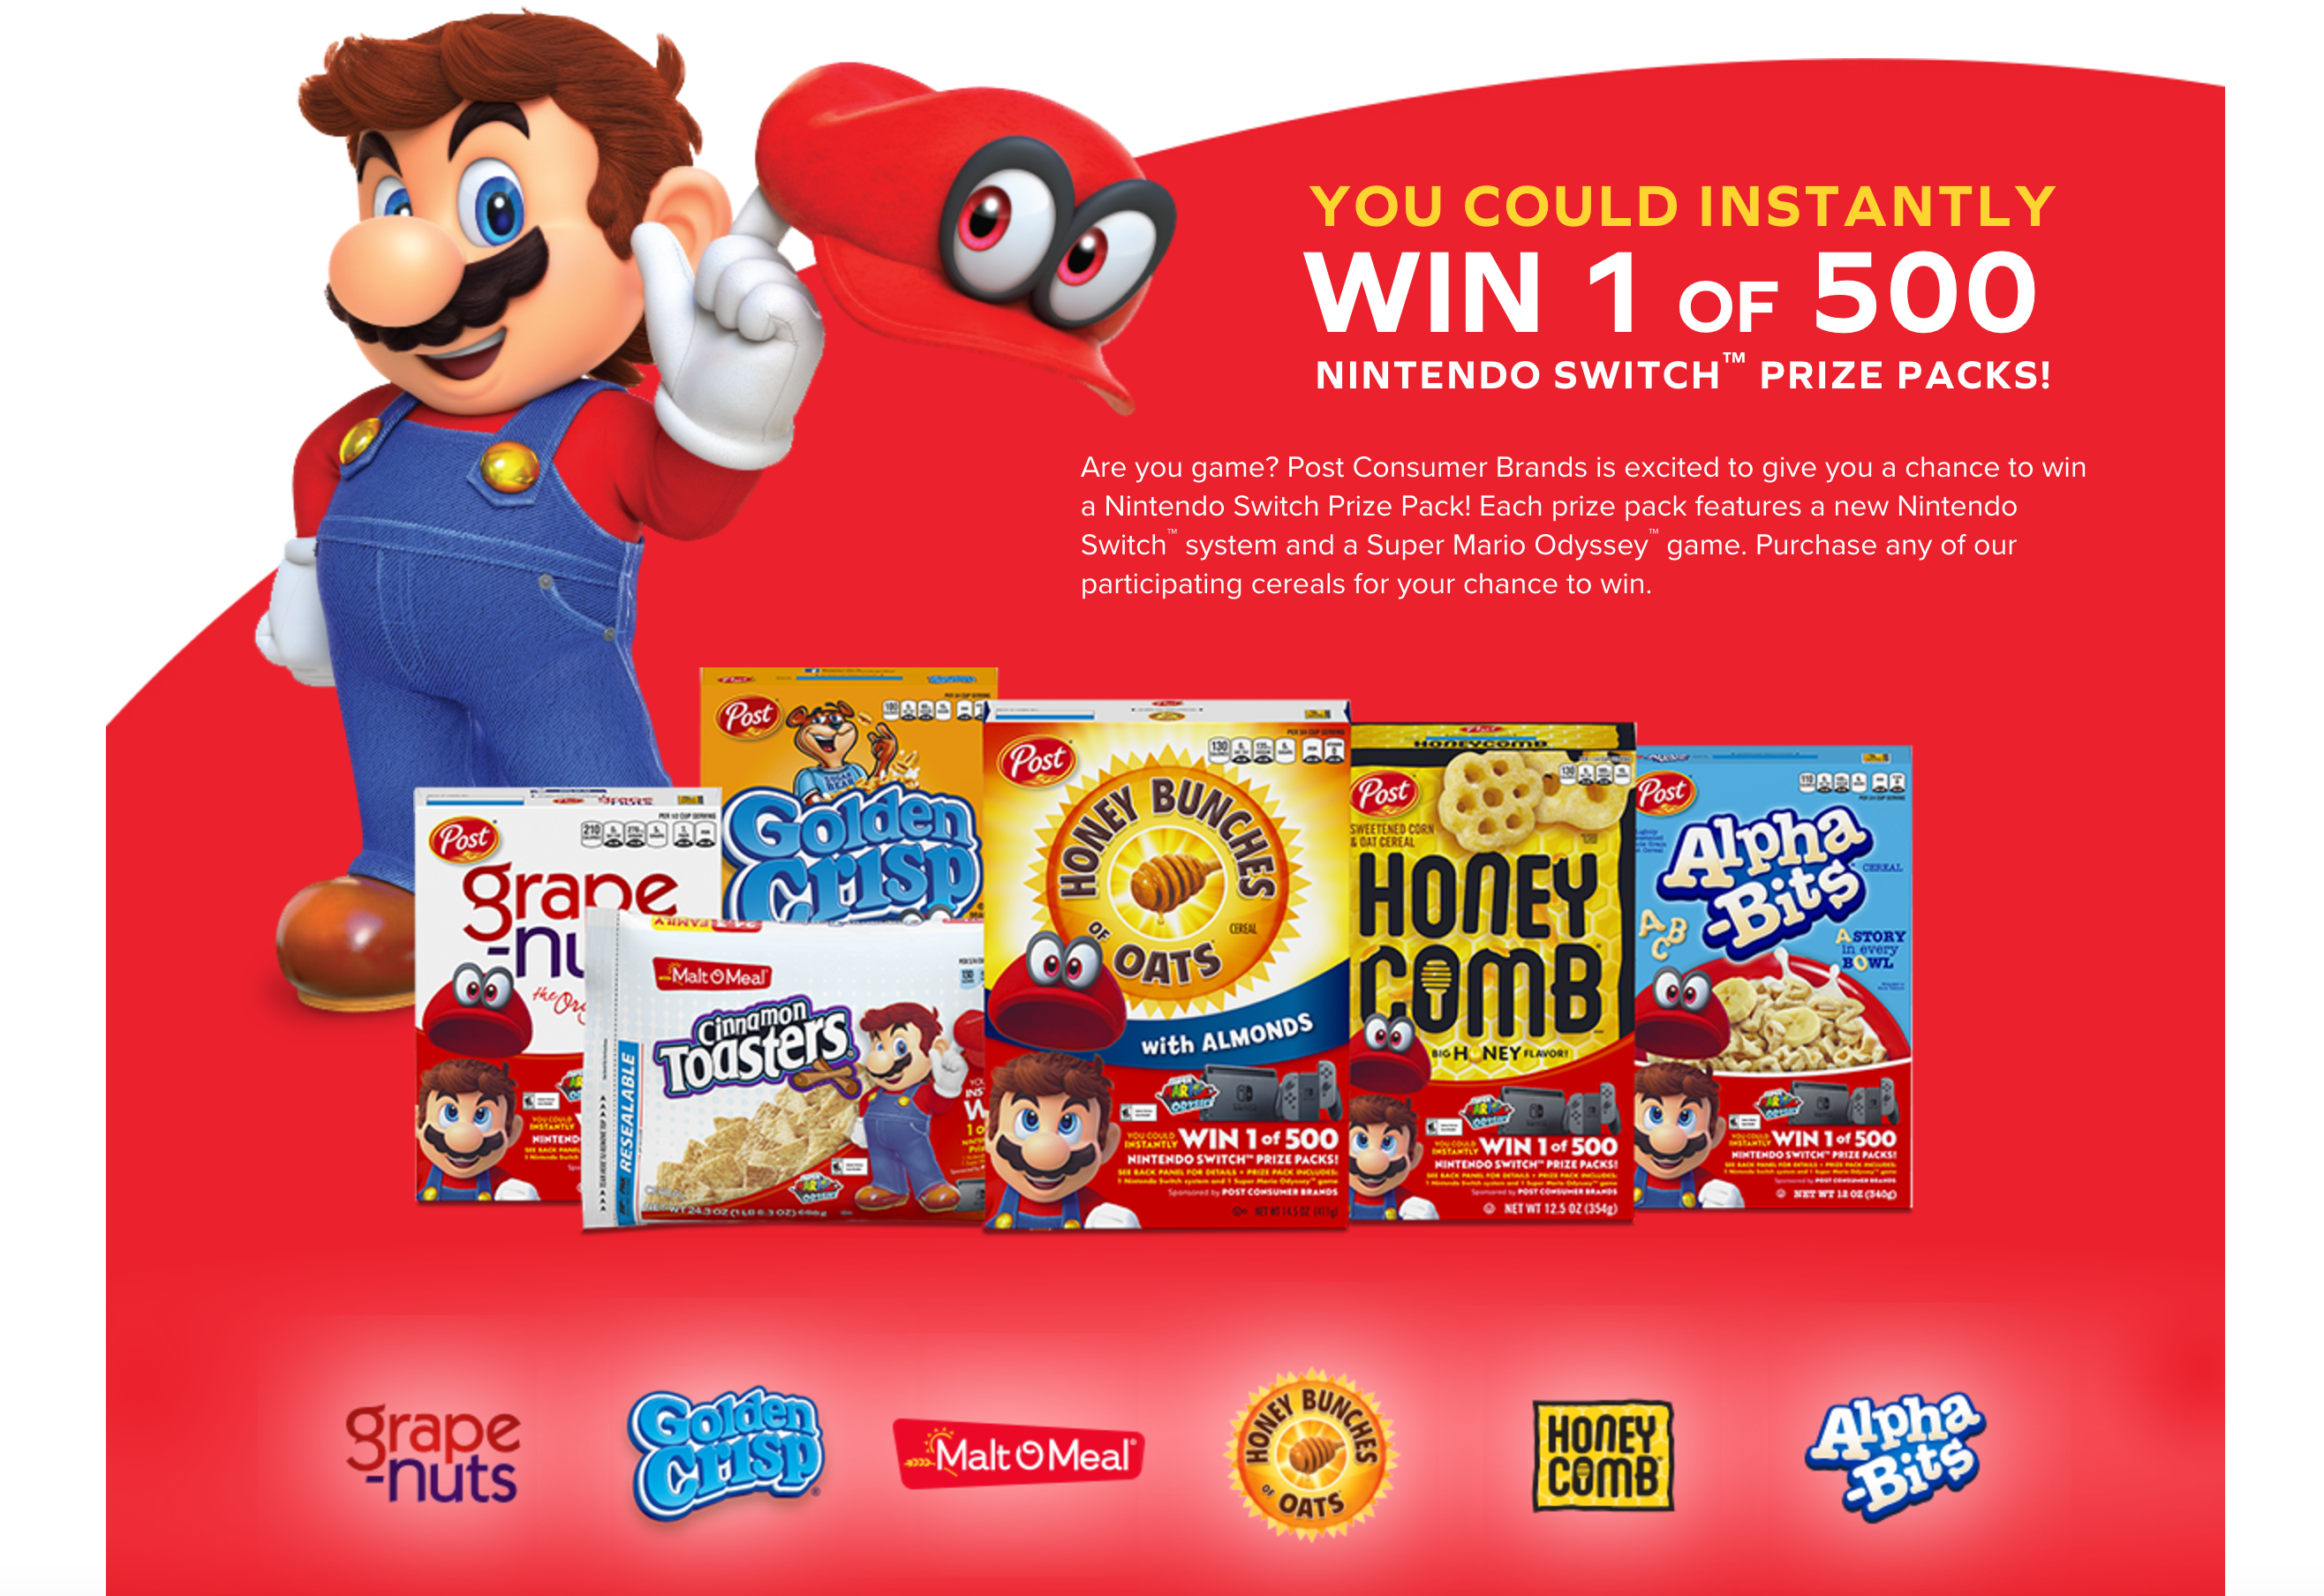 Win 1 of 500 Nintendo Switch Console + New Super Mario Odyssey Video Game Prize Pack!